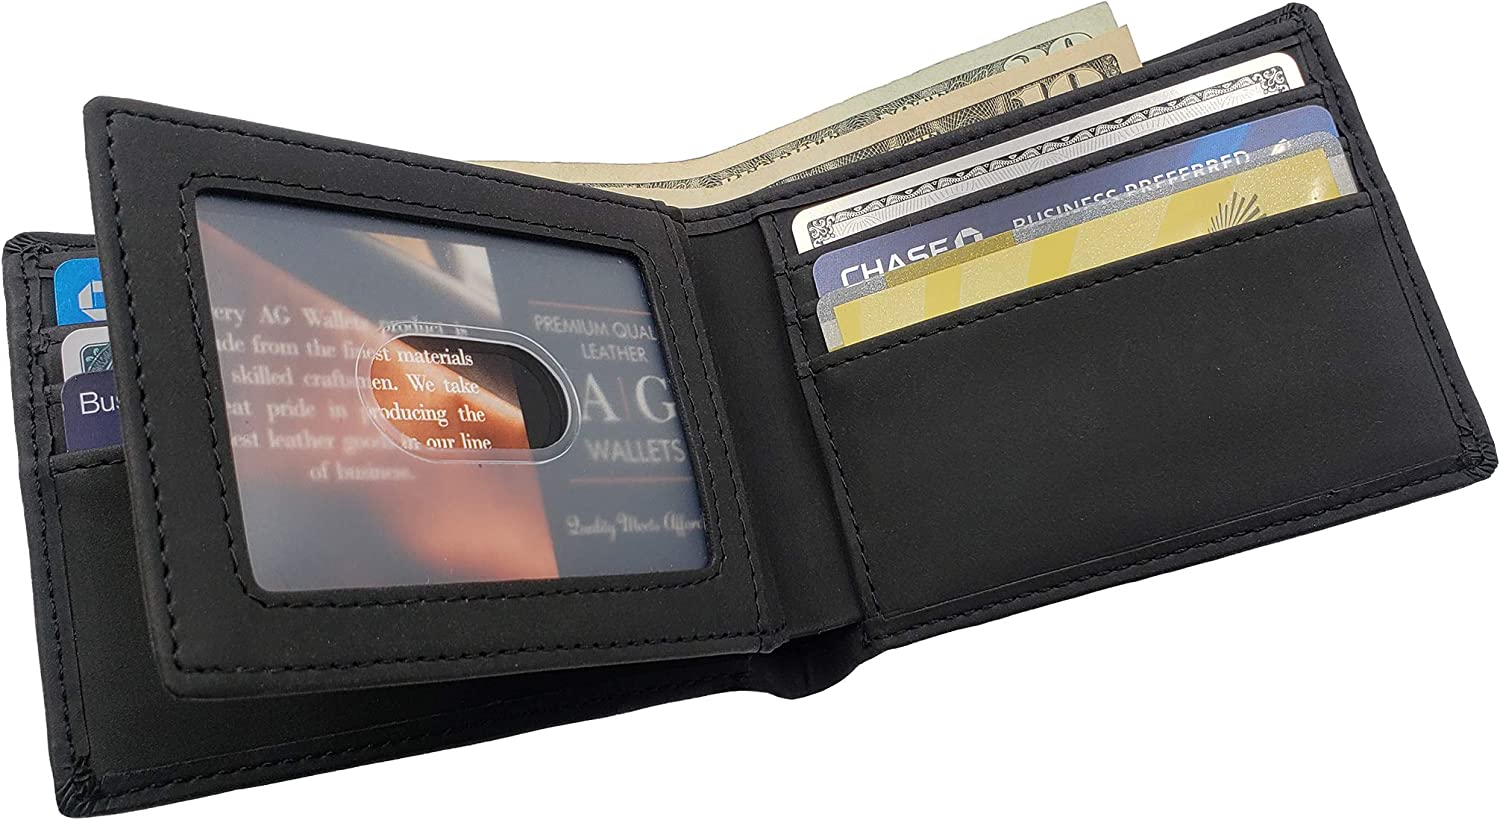 AG Wallets Mens Vegan Leather Bifold Wallet, RFID Protection, Faux Leather Credit Card Holder